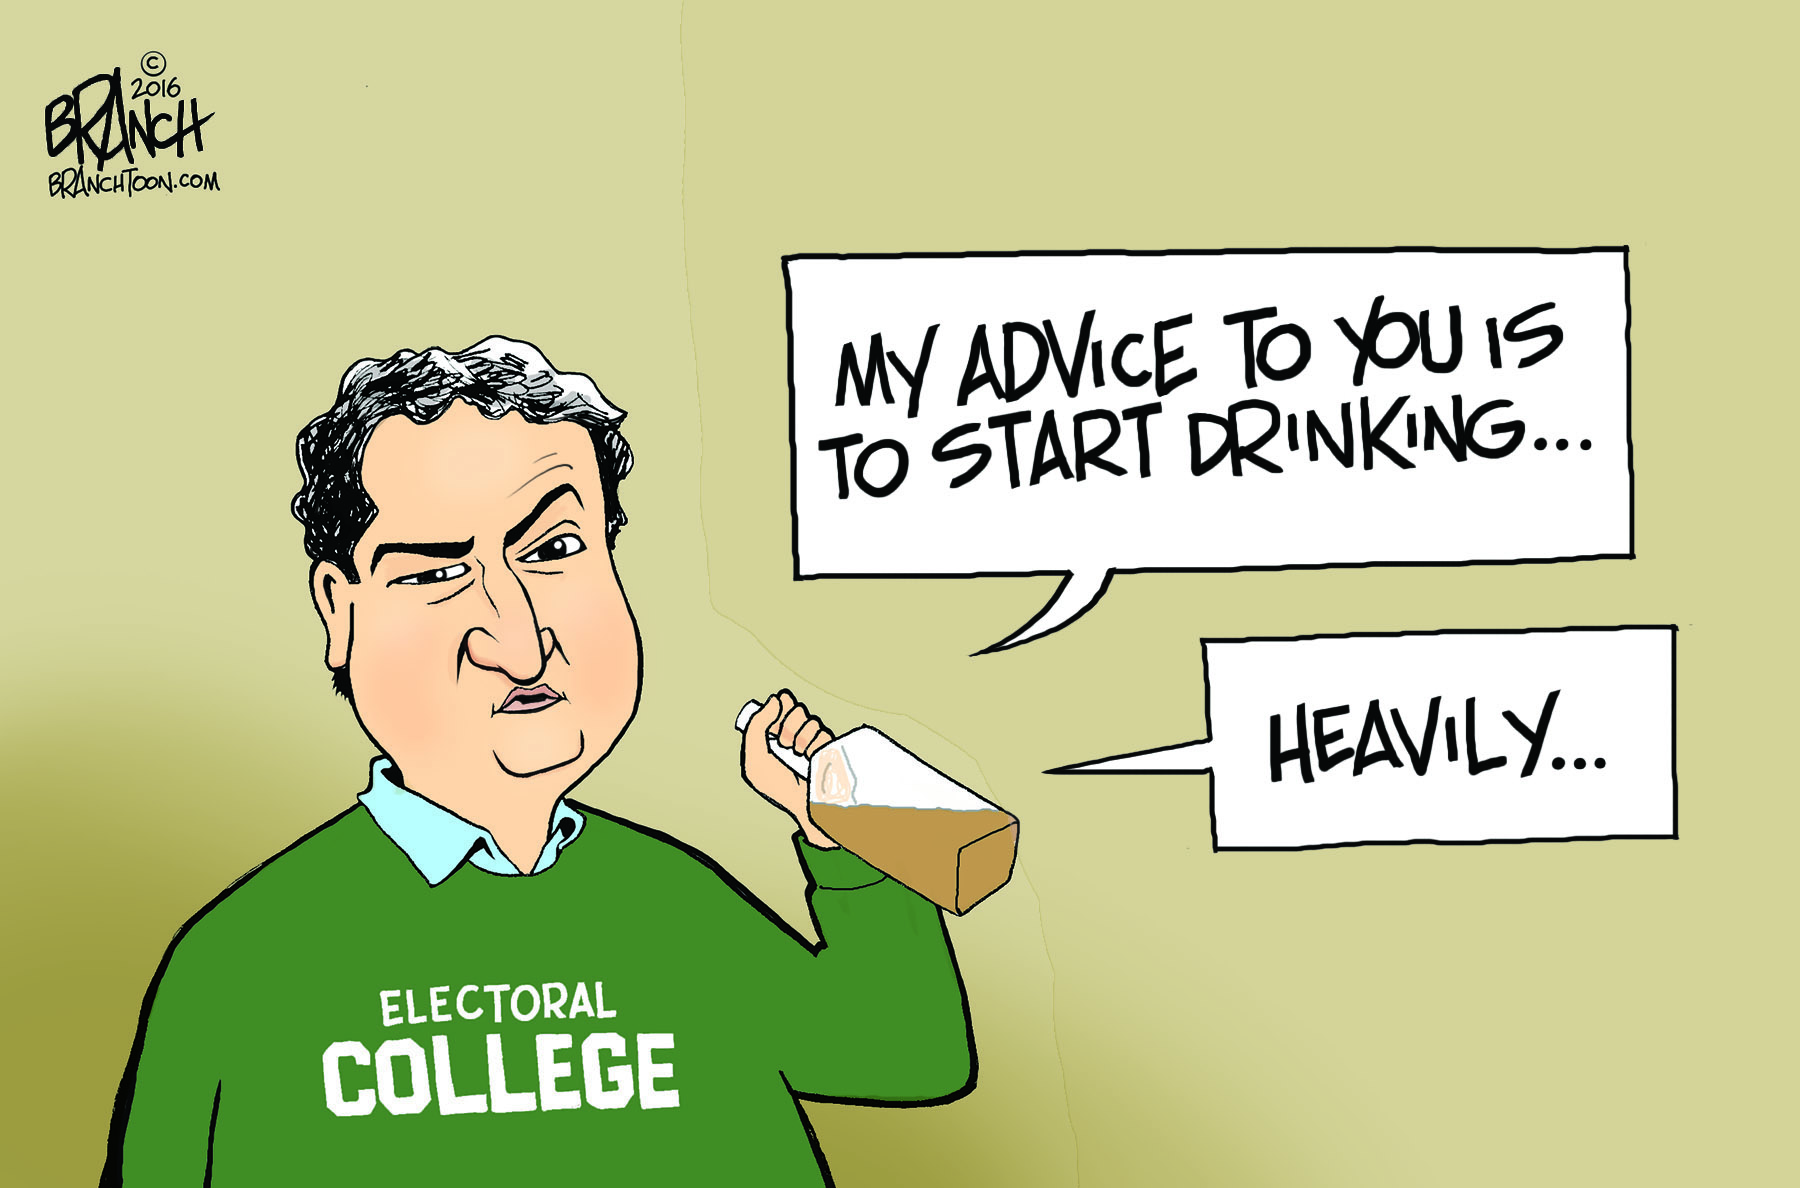 112116 electoral college drink heavily web